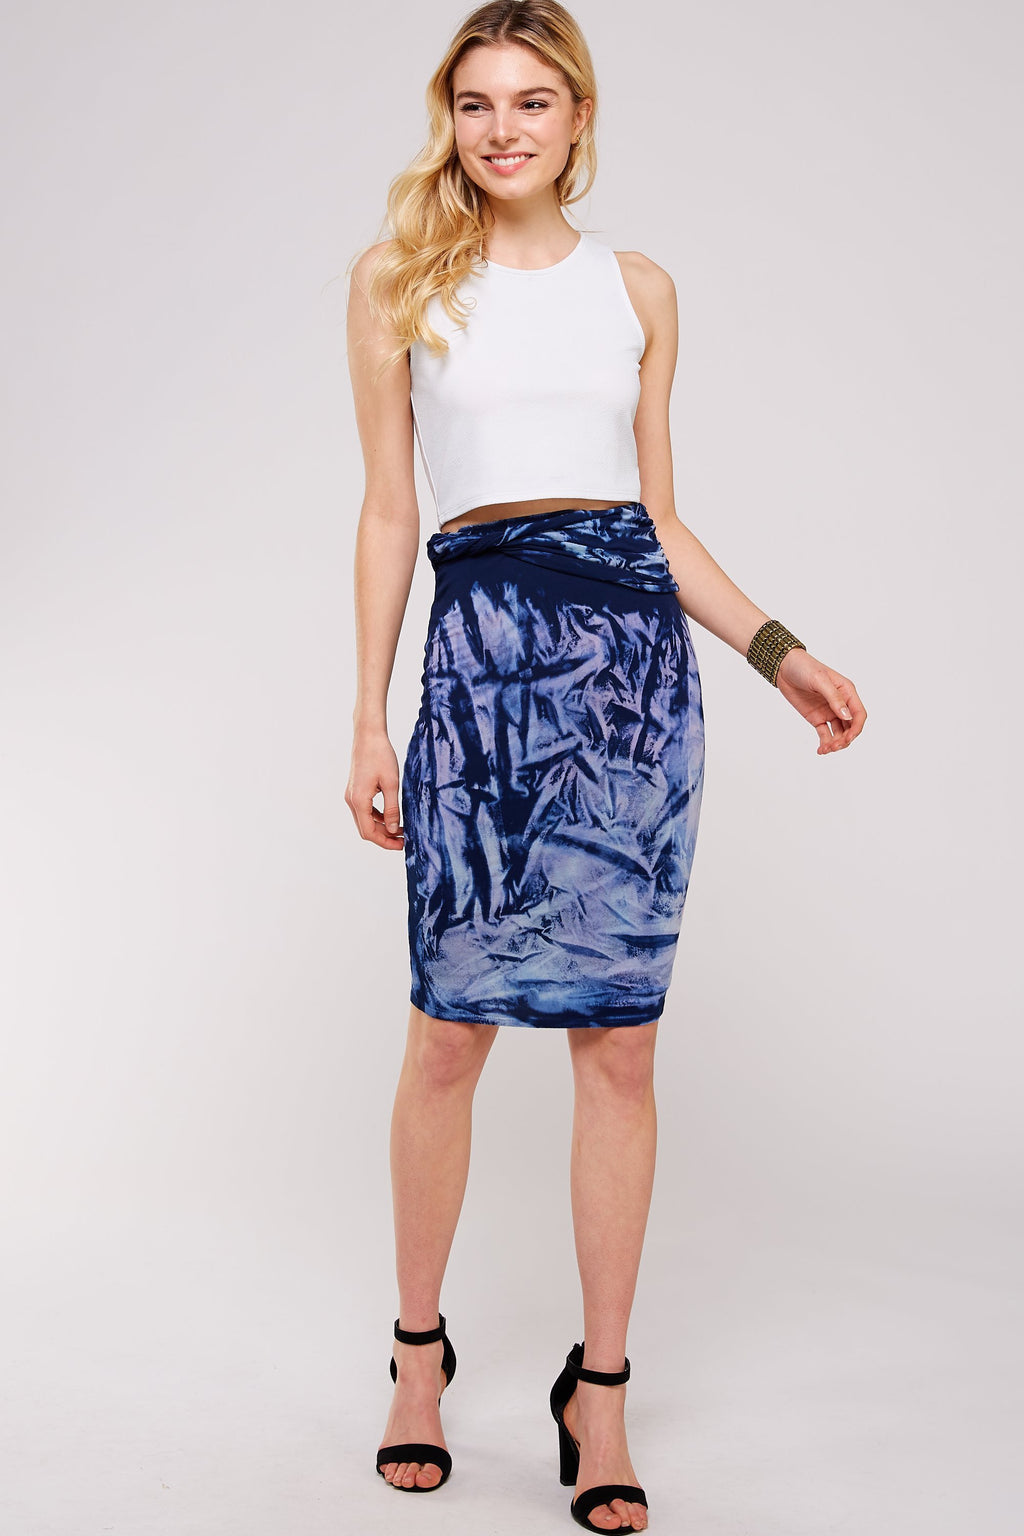 Wholesale Clothing, Online Wholesale Clothing, Women Clothing, Bohemian, Free People, tiedye, specialty wash, wholesale seller, wholesale women clothing shop, gypsy look, USA made, URBAN X APPAREL-SKIRTS-USR9014, fashiontrend2019